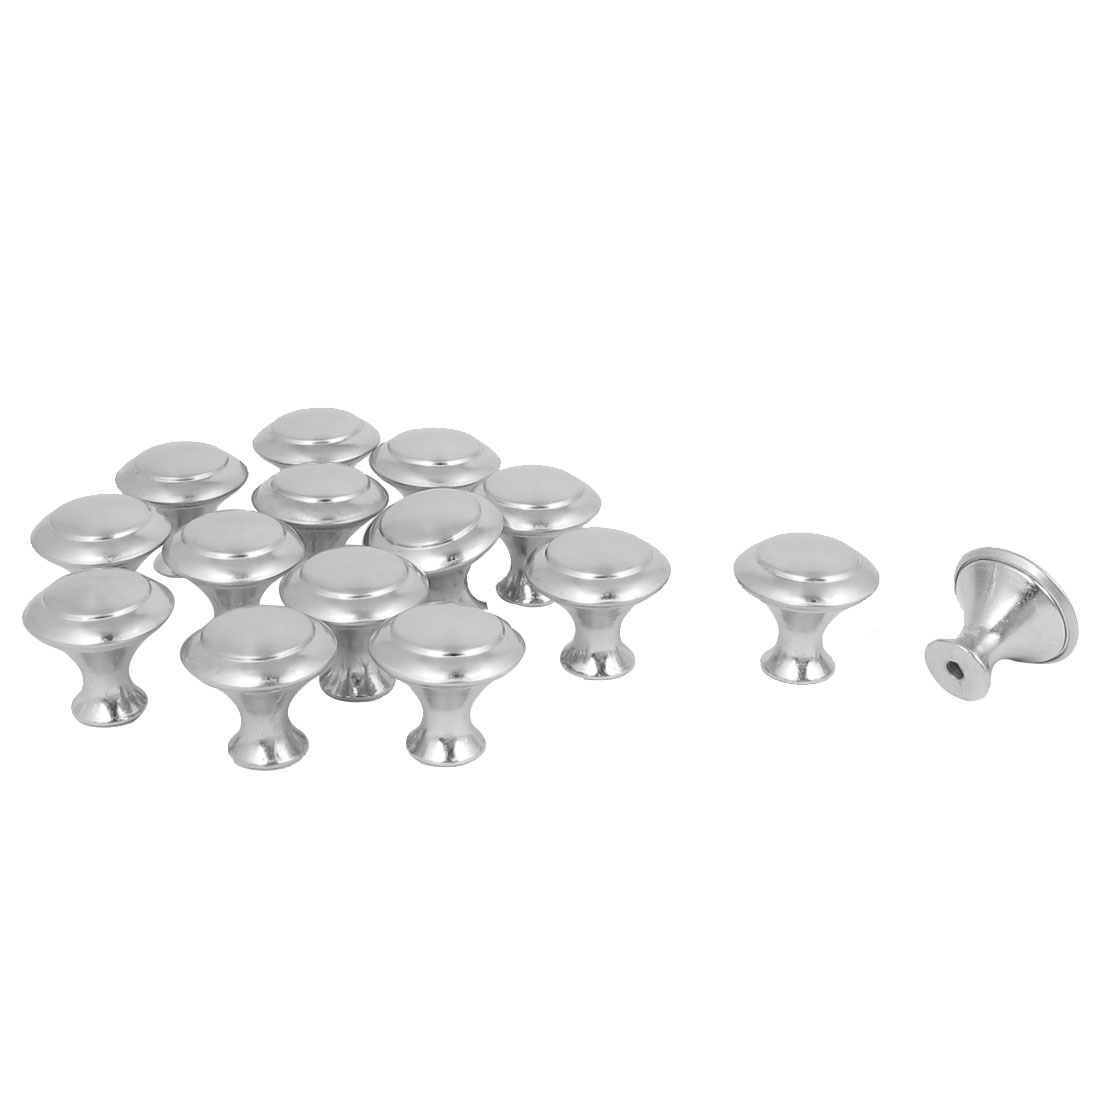 Home Door Drawer Cabinet Cupboard Closet Round Metal Pull Knob Handle 15Pcs